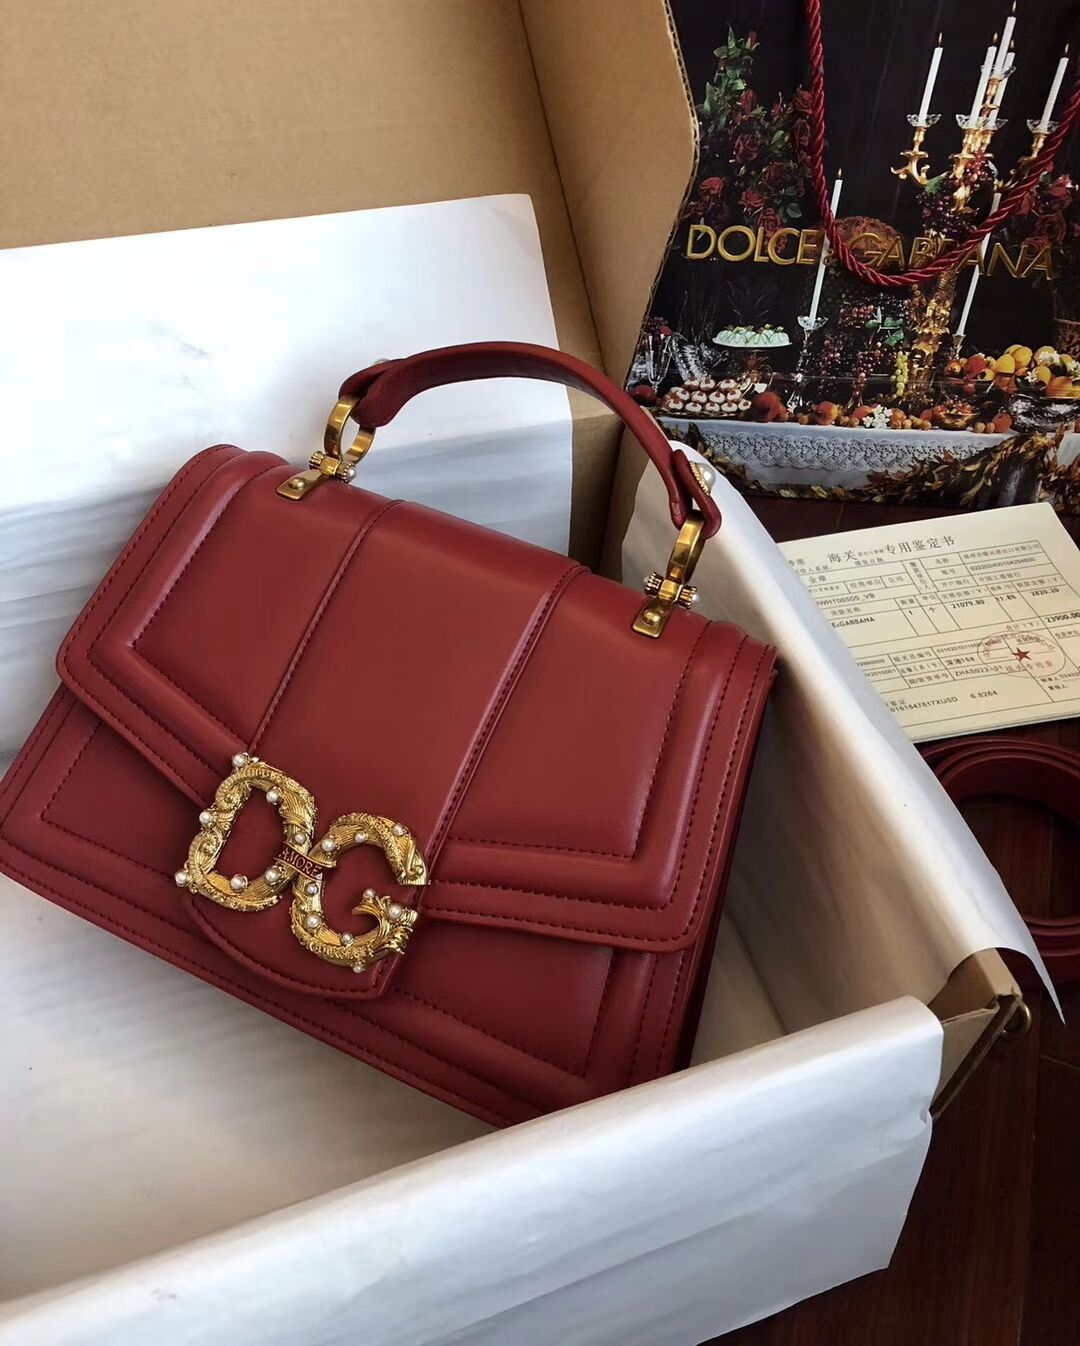 Dolce & Gabbana Origianl Leather Bag 4916 Red